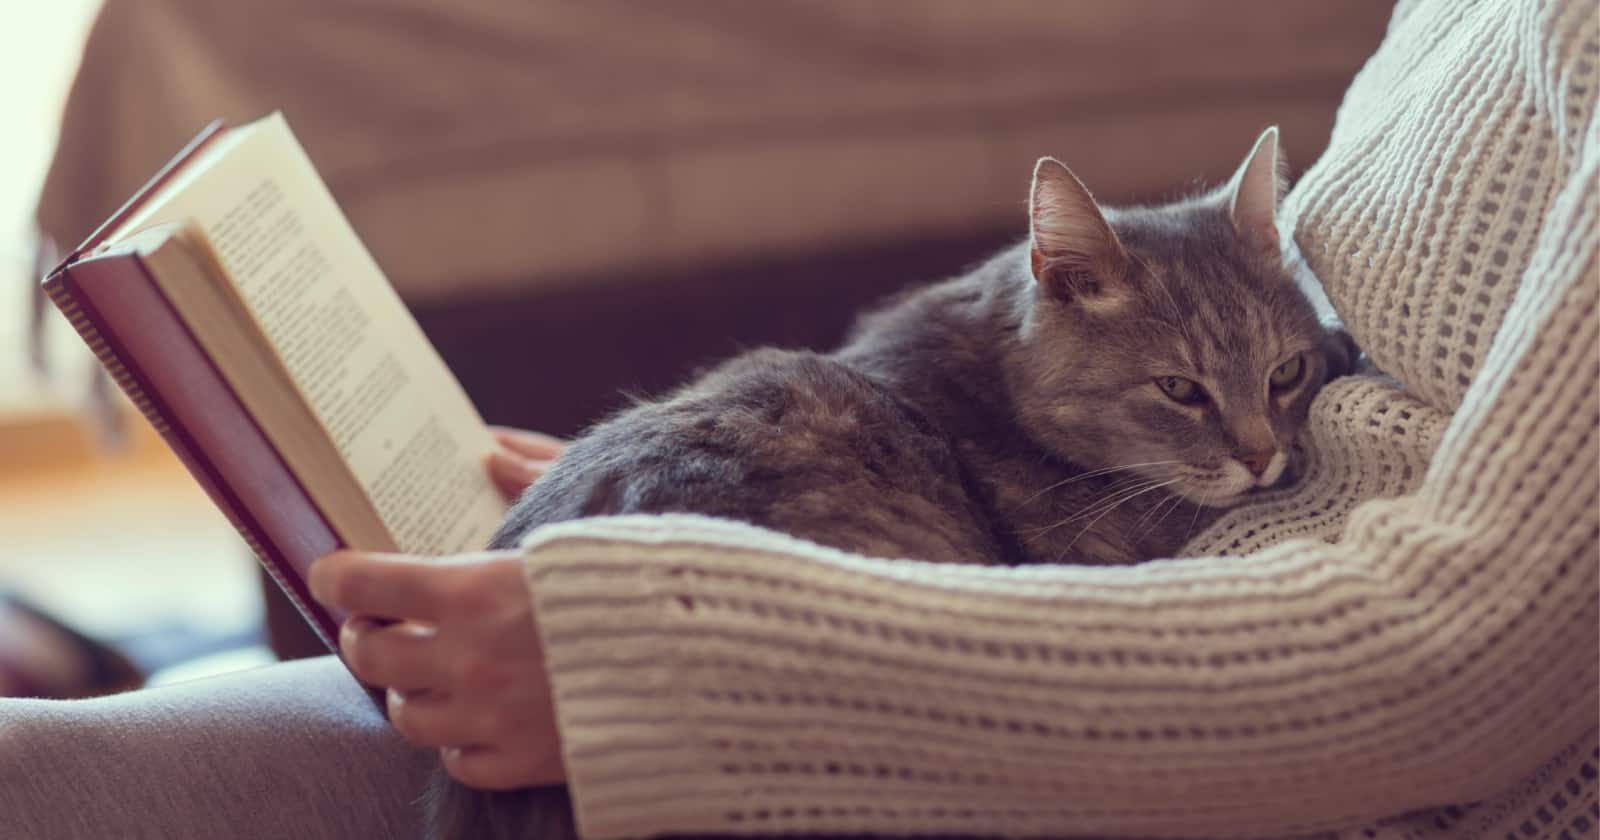 Building a trusting relationship with your kitty takes time, but these 10 ways to bond with your cat can help make it go a lot smoother.